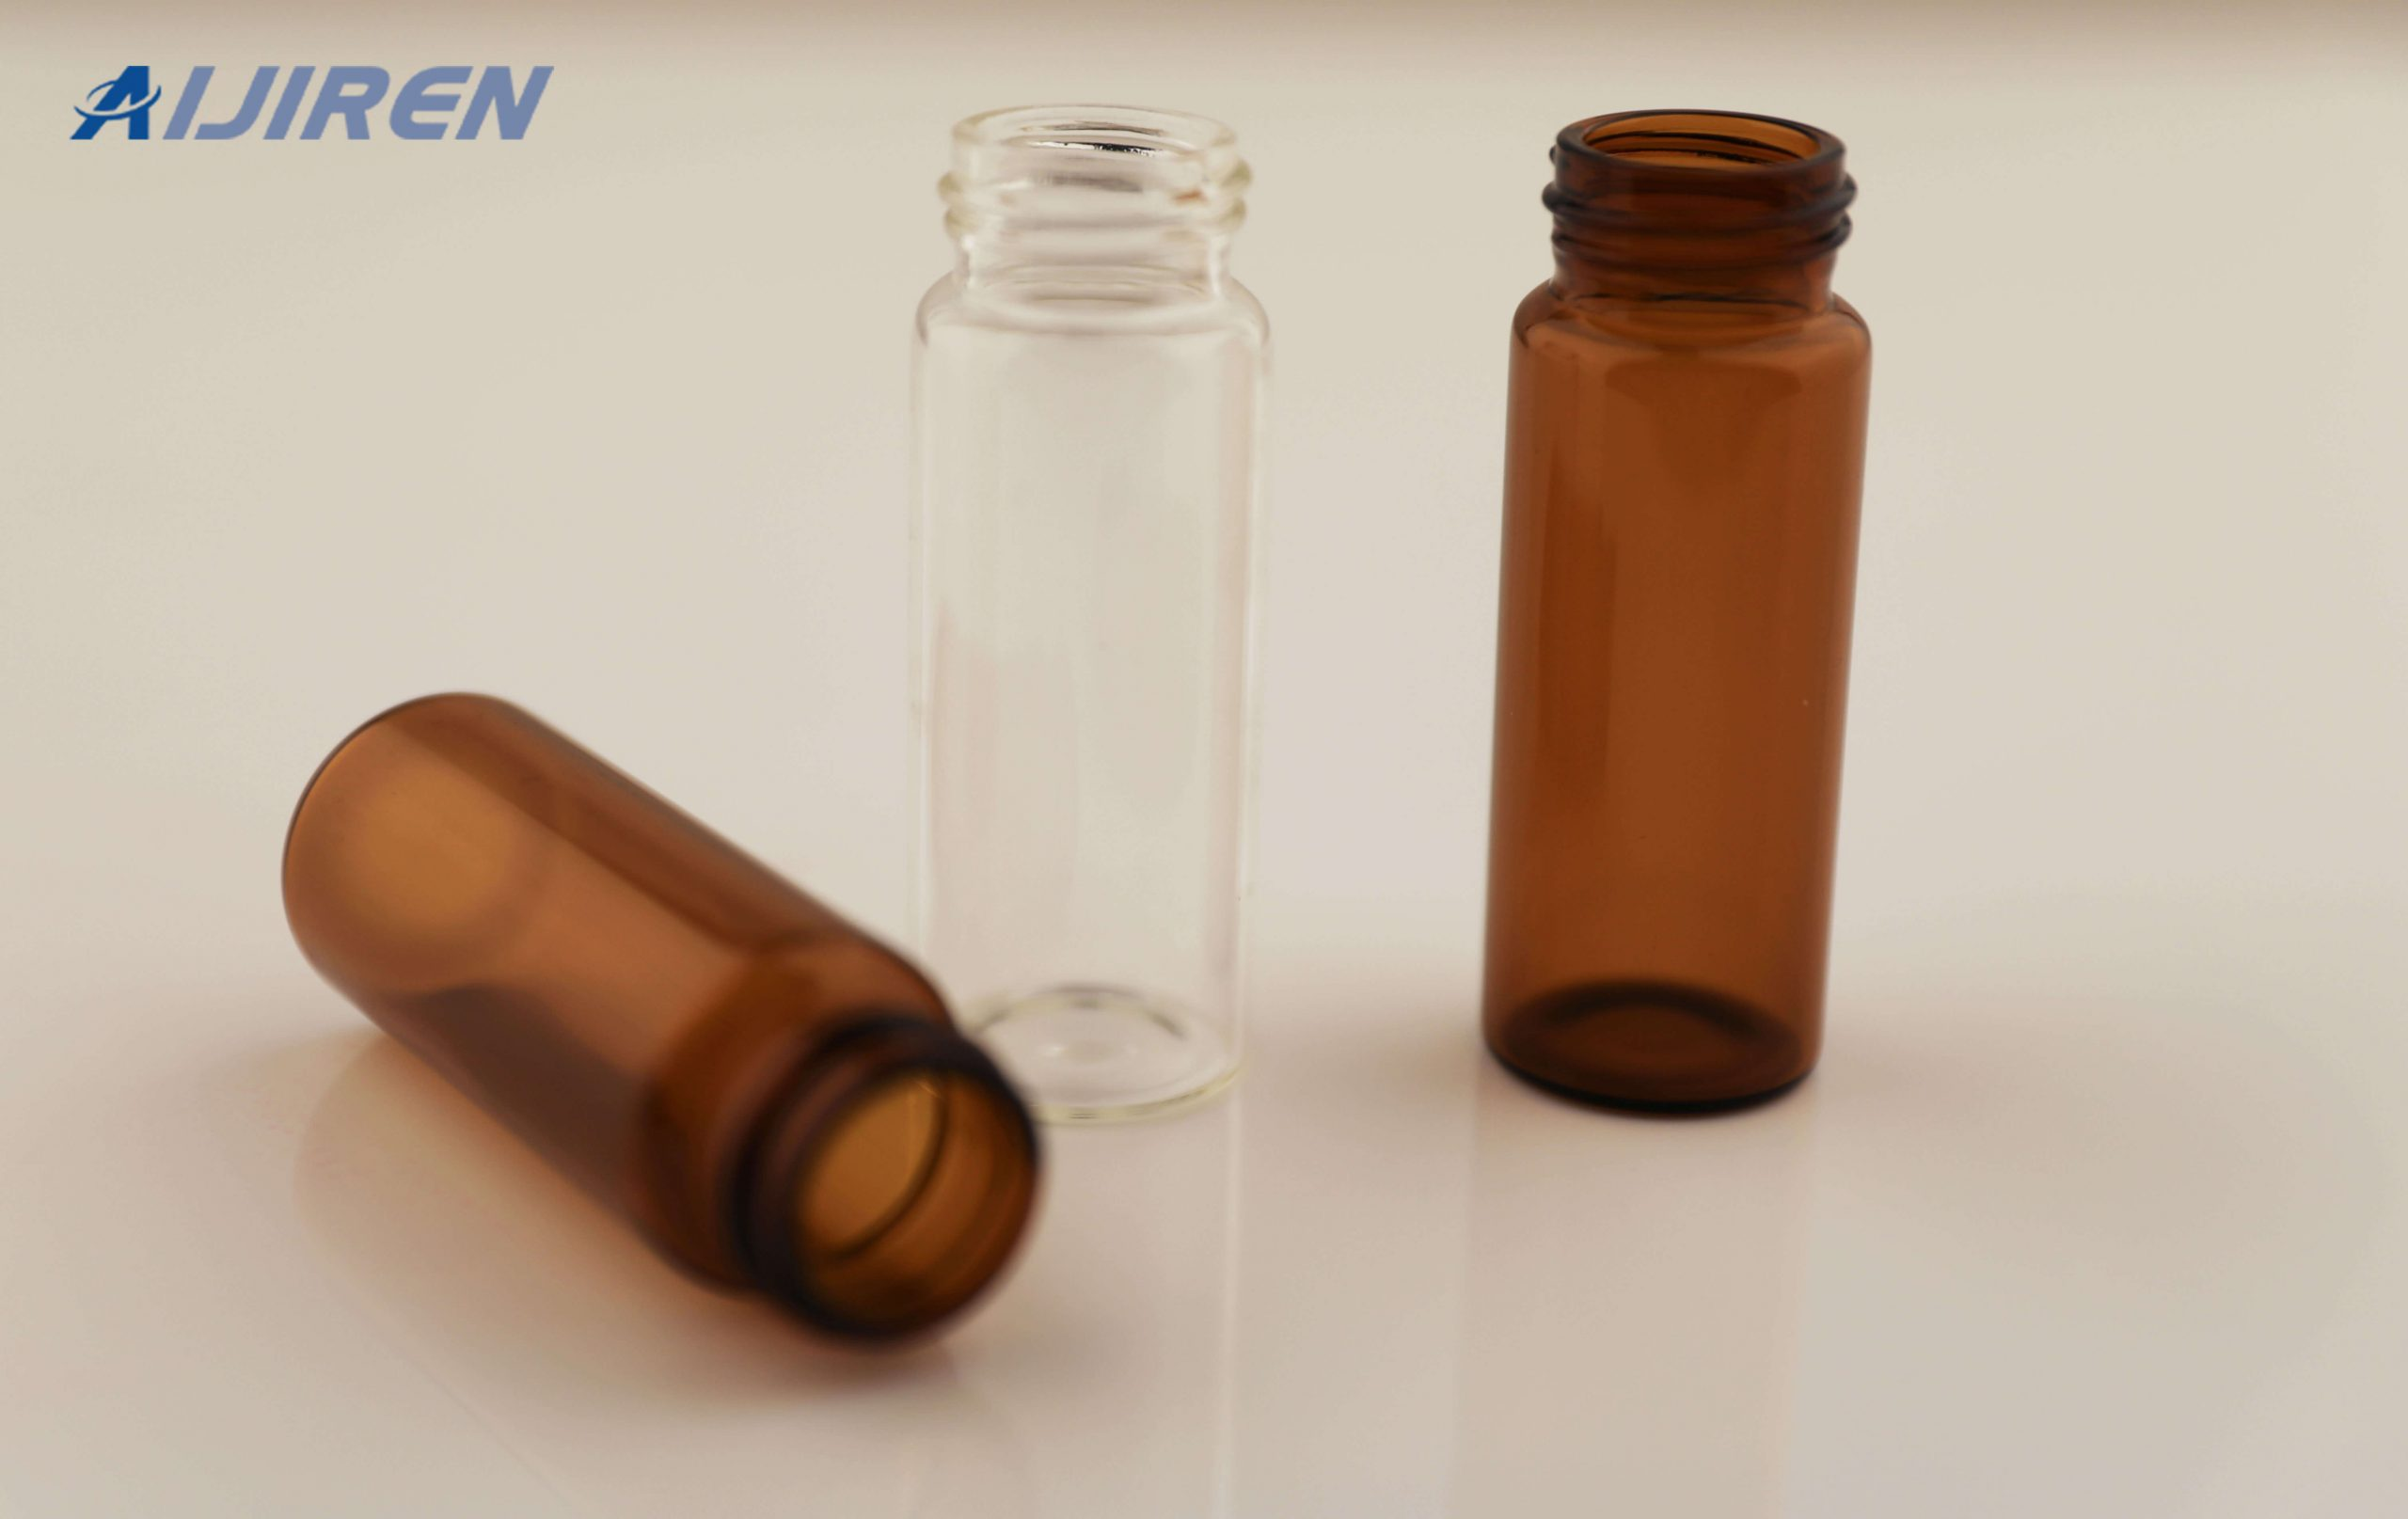 Amber and Clear Screw Sample Storage Vials